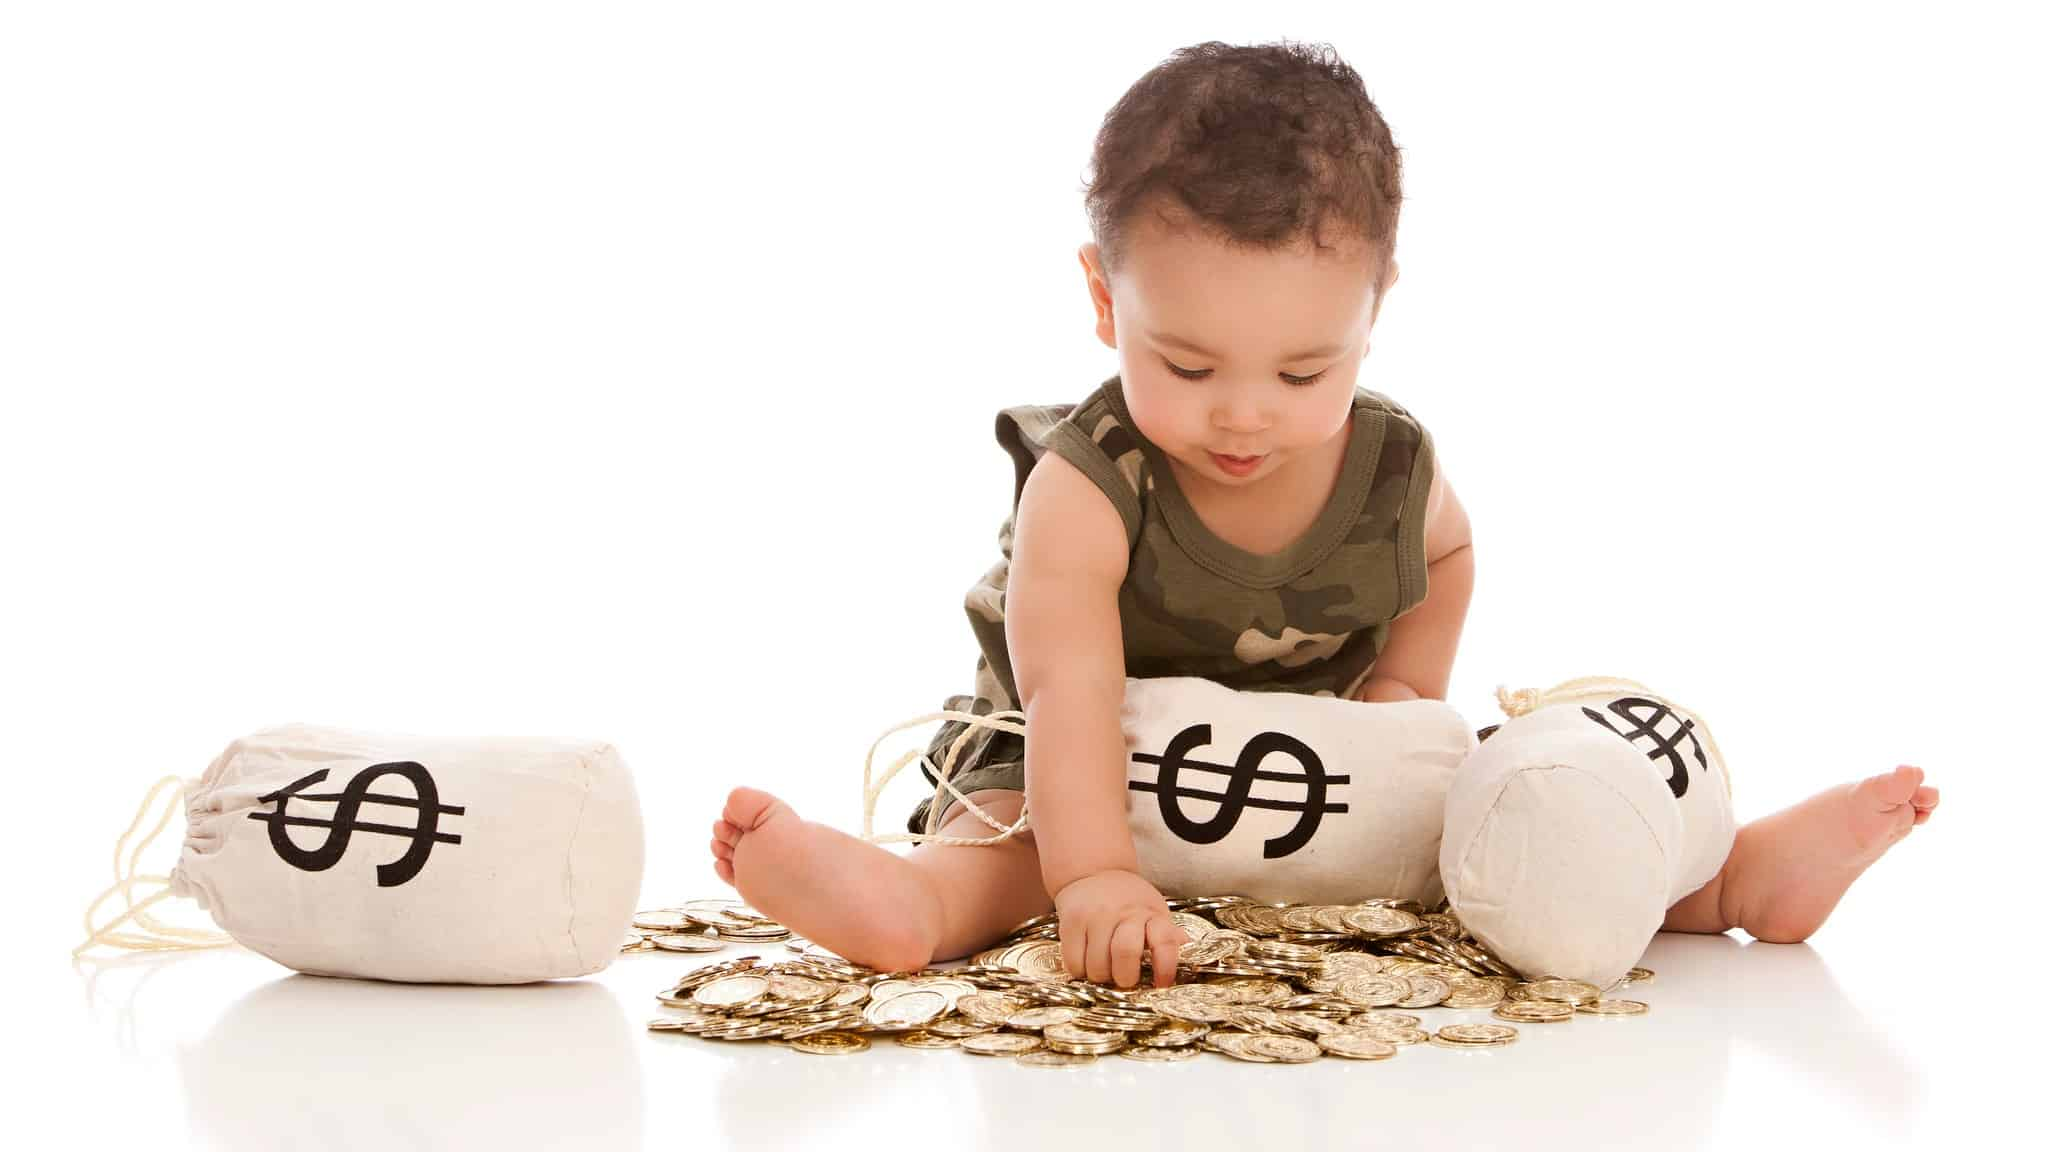 asx shares beginner investor represented by baby playing with gold coins and bags of money